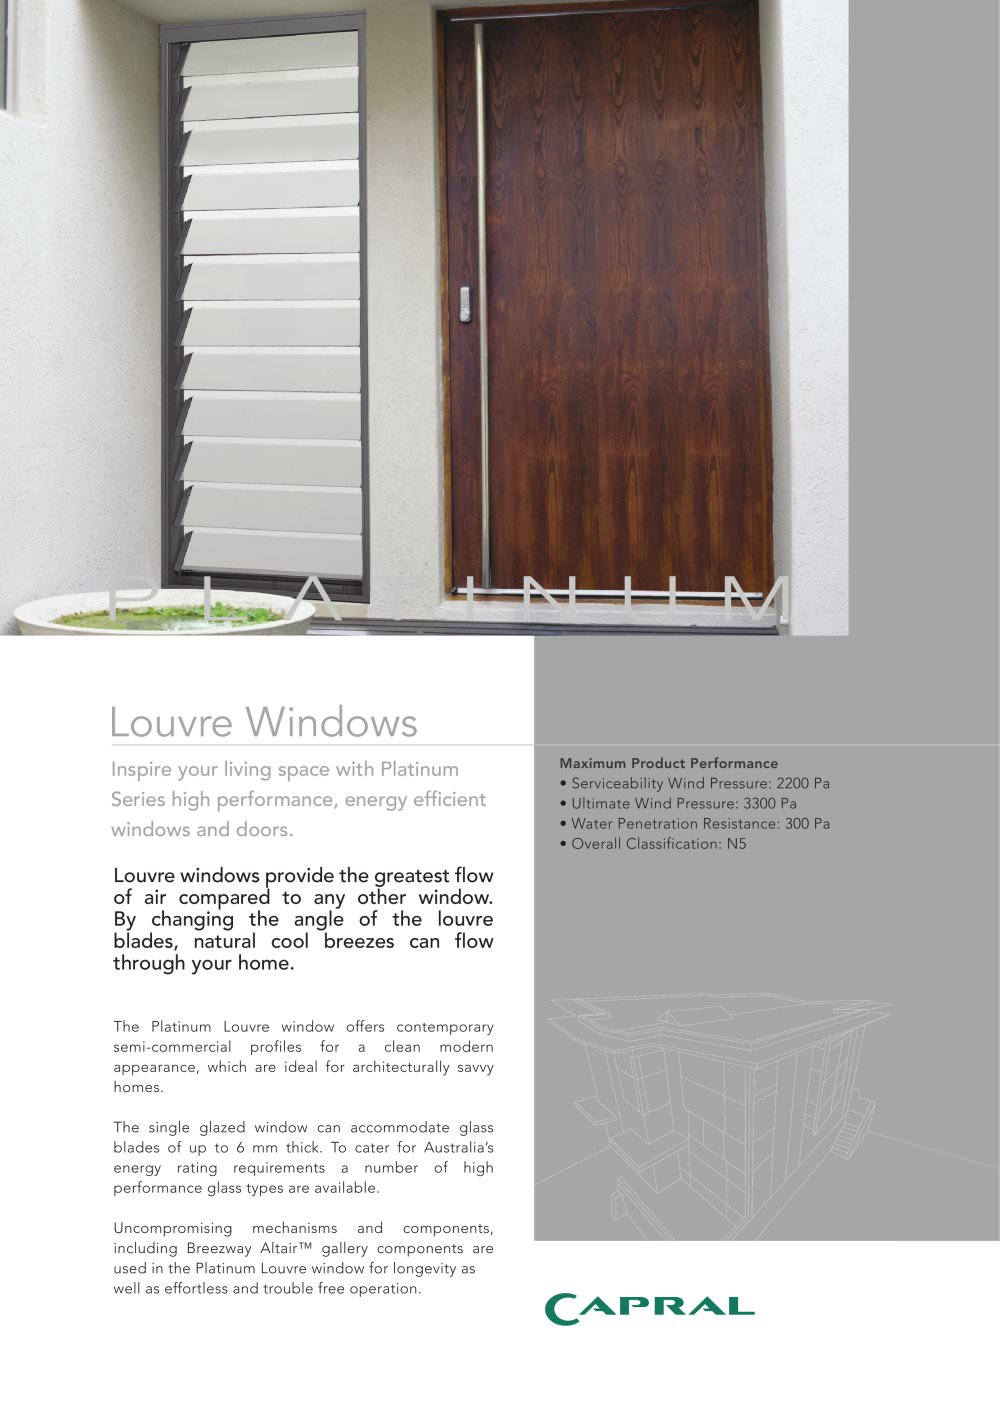 wonderful images of wood windows designing for high performance